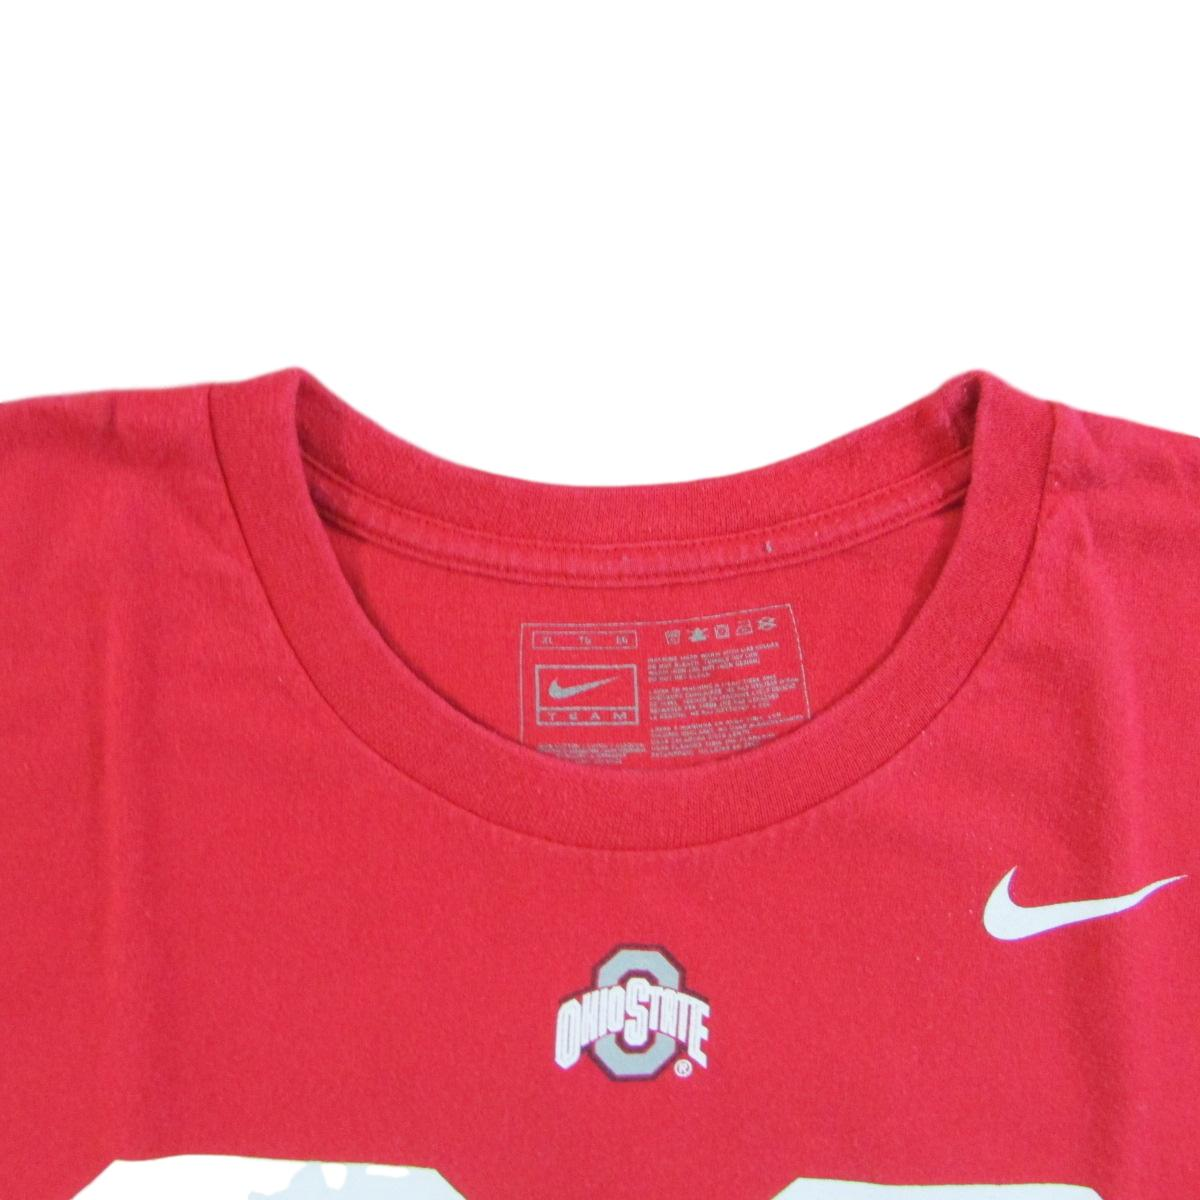 Ohio State University College Football T-Shirt Buckeyes Nike Sz XL